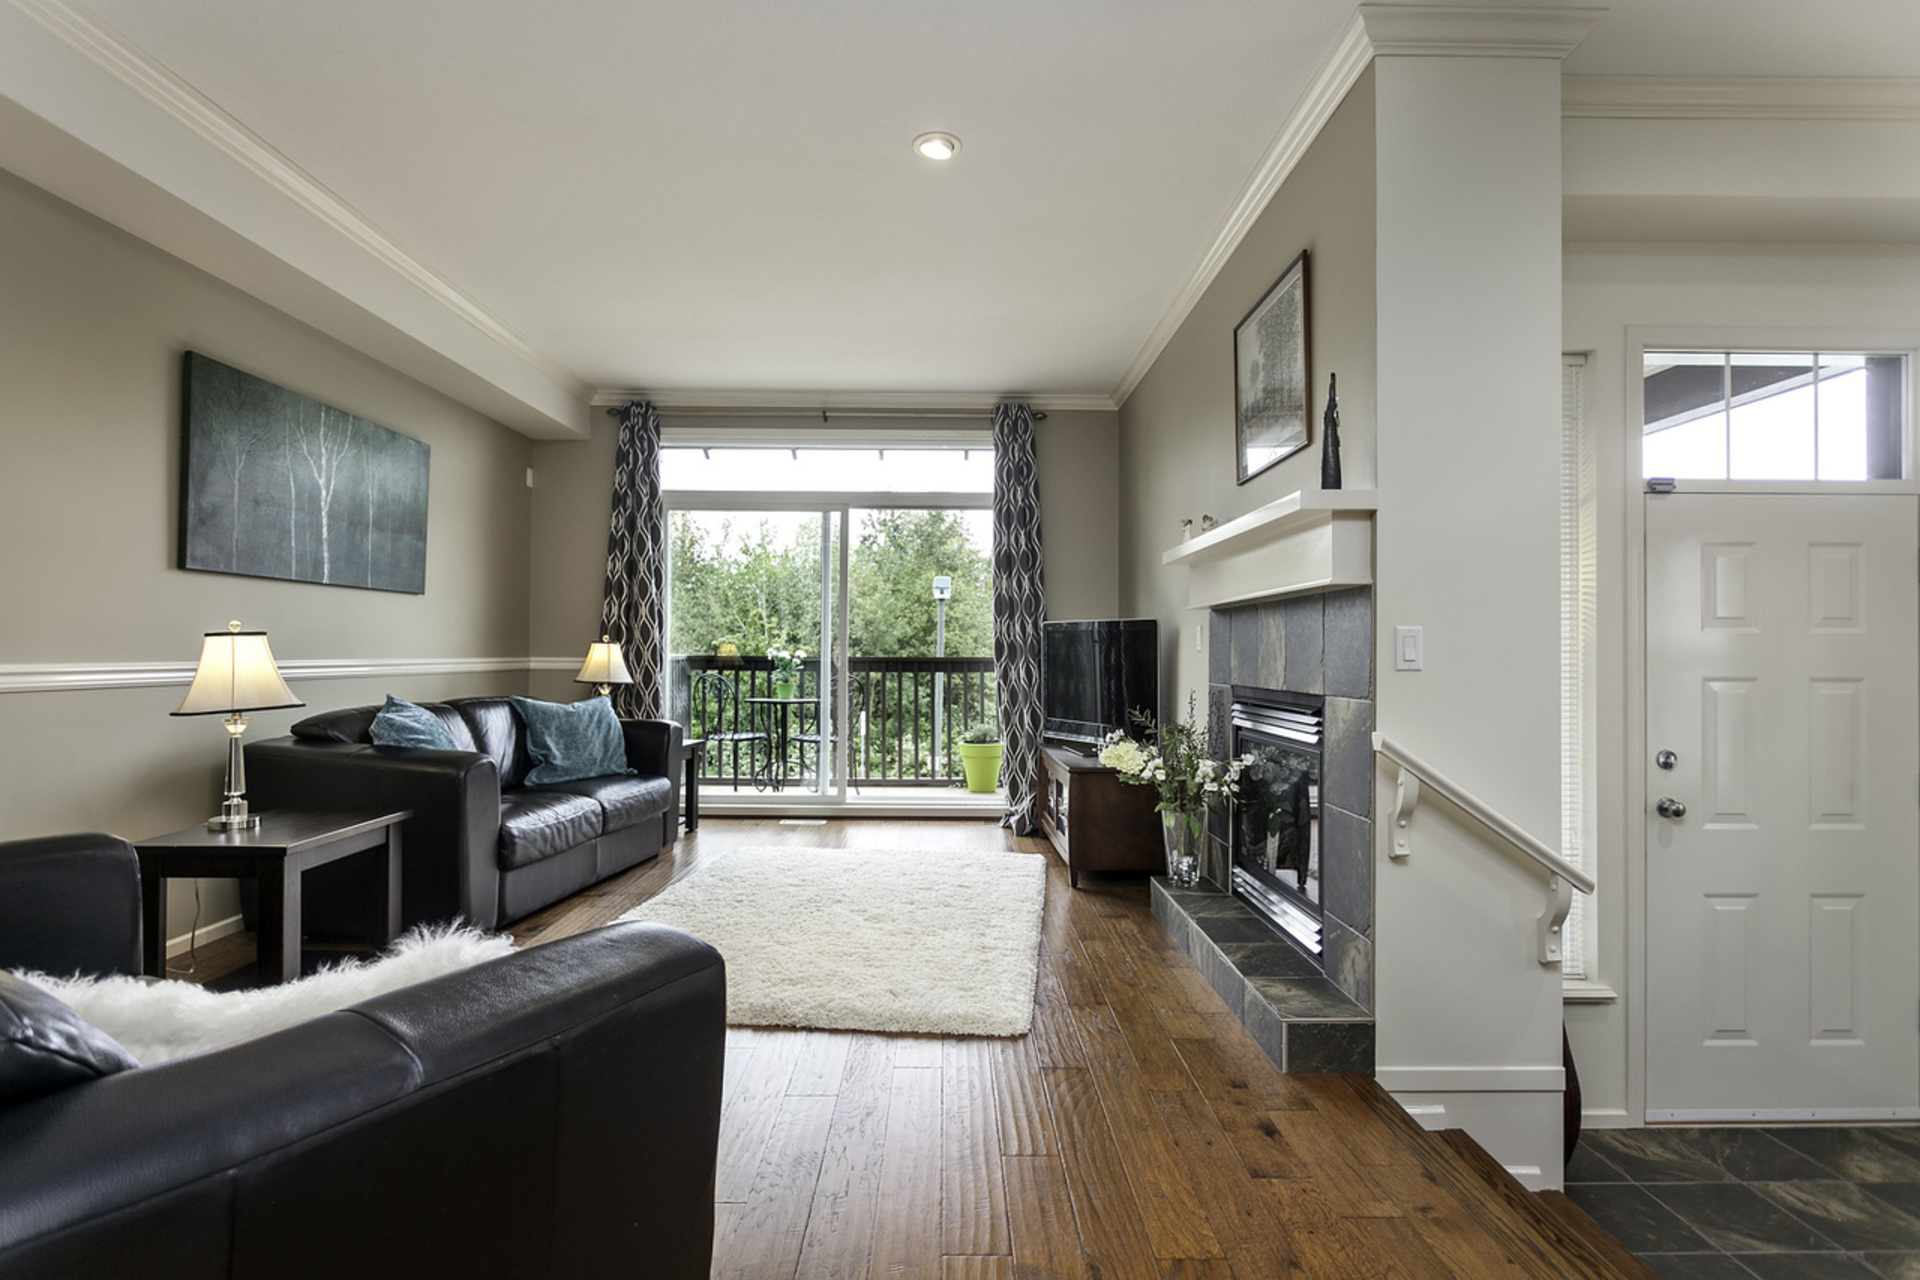 12-1 at 109 Forest Park Way, Heritage Woods PM, Port Moody